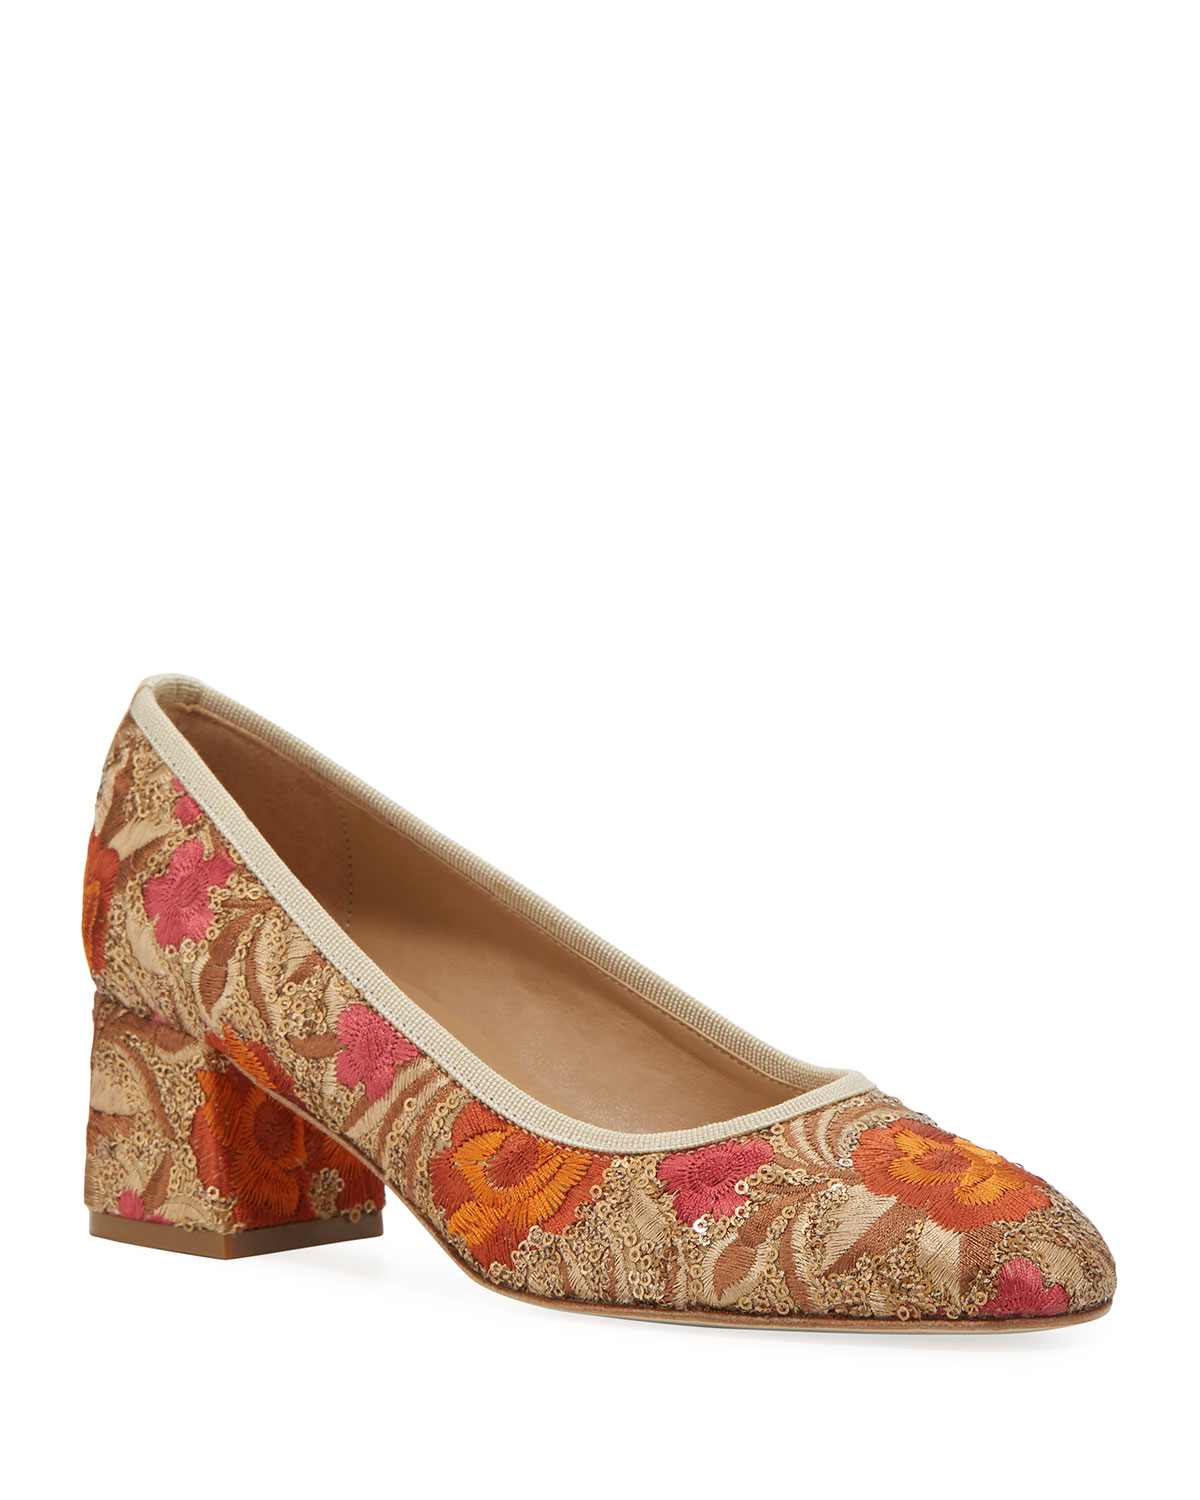 Megs Sequin-Embroidered Pumps